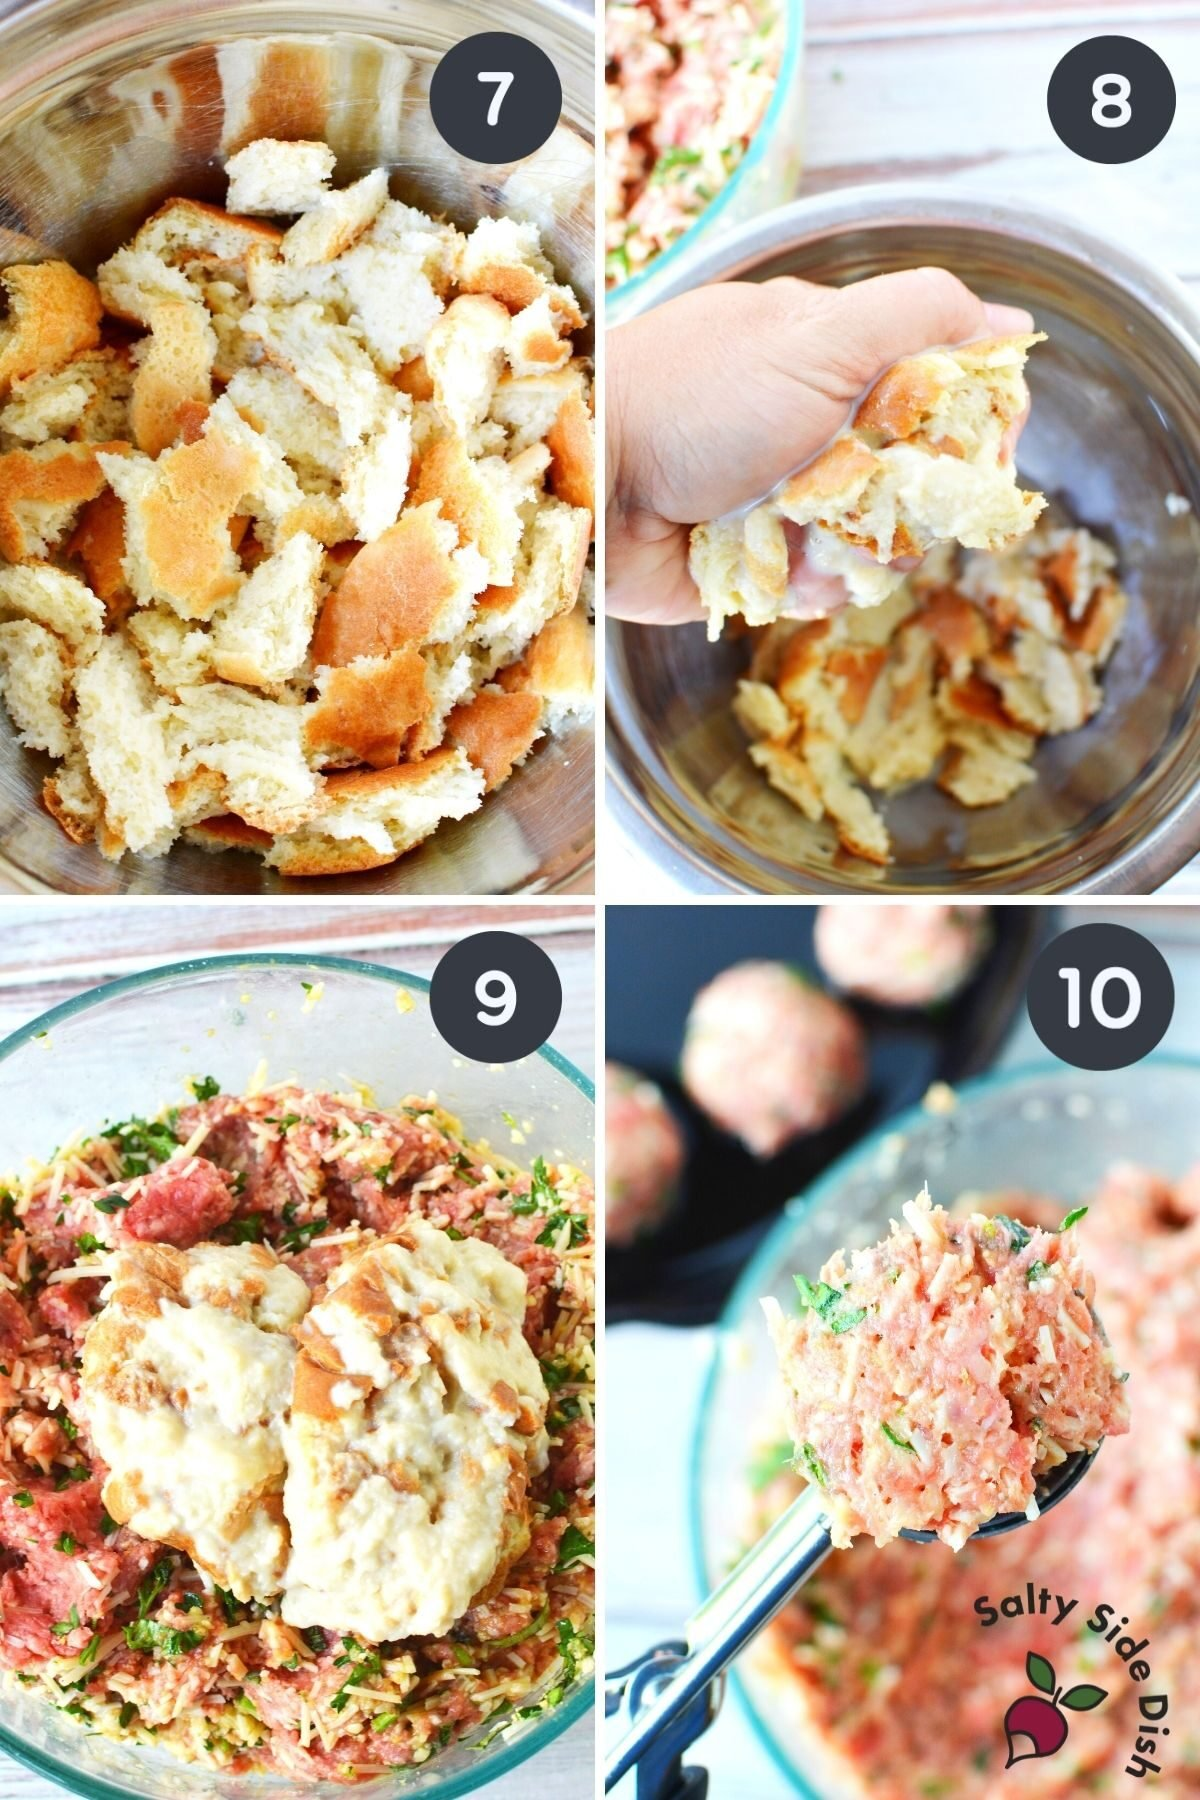 collage of 4 images showing adding bread crumb mixture in beef and scooping.